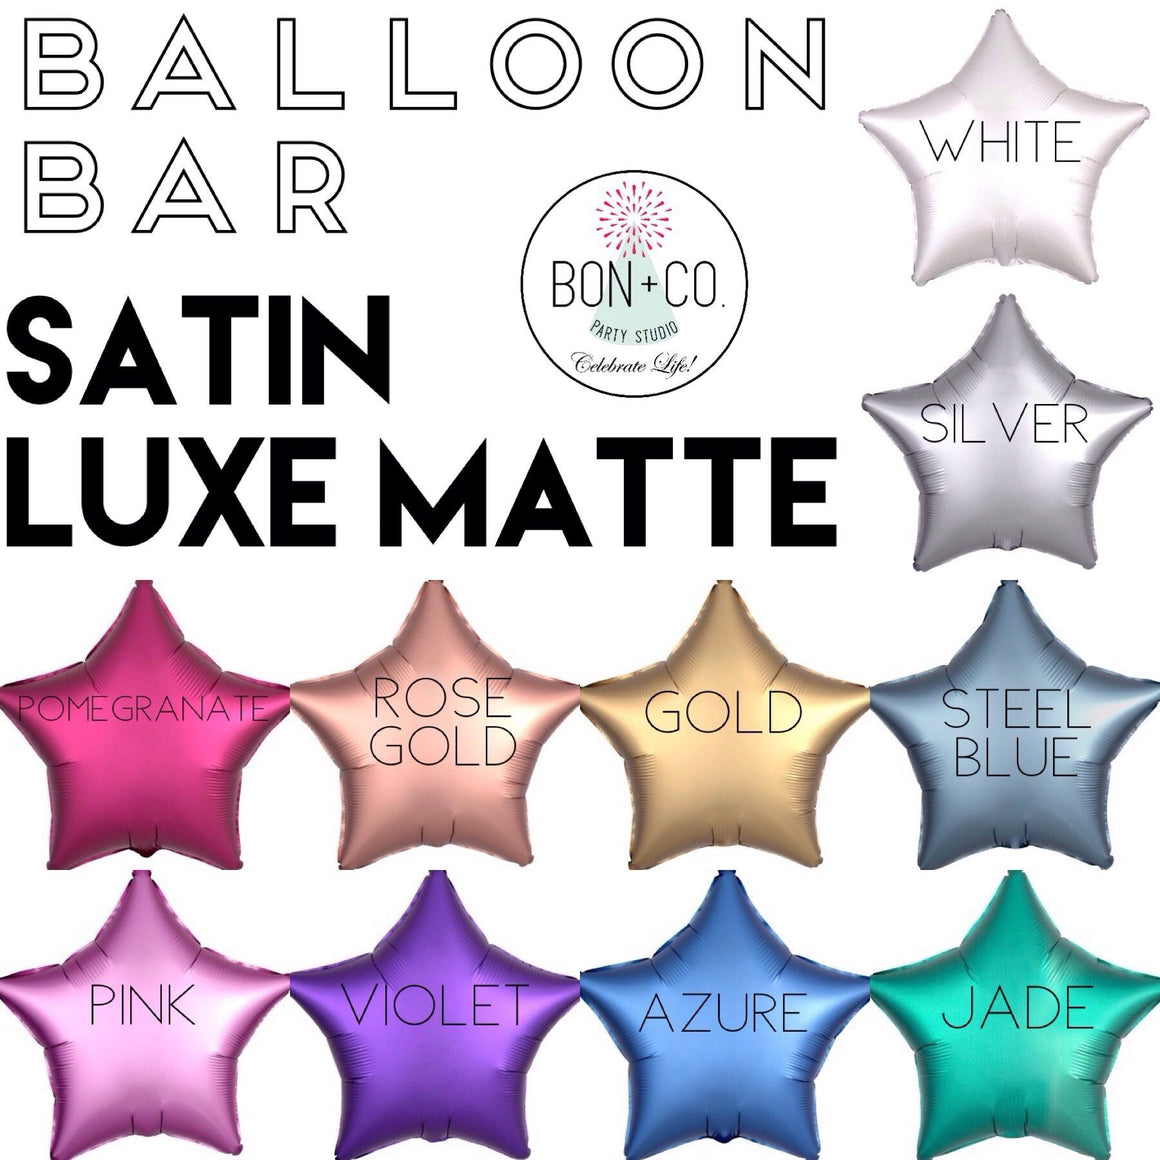 "BALLOON BAR - 18"" SATIN LUXE STAR, Balloons, Anagram - Bon + Co. Party Studio"